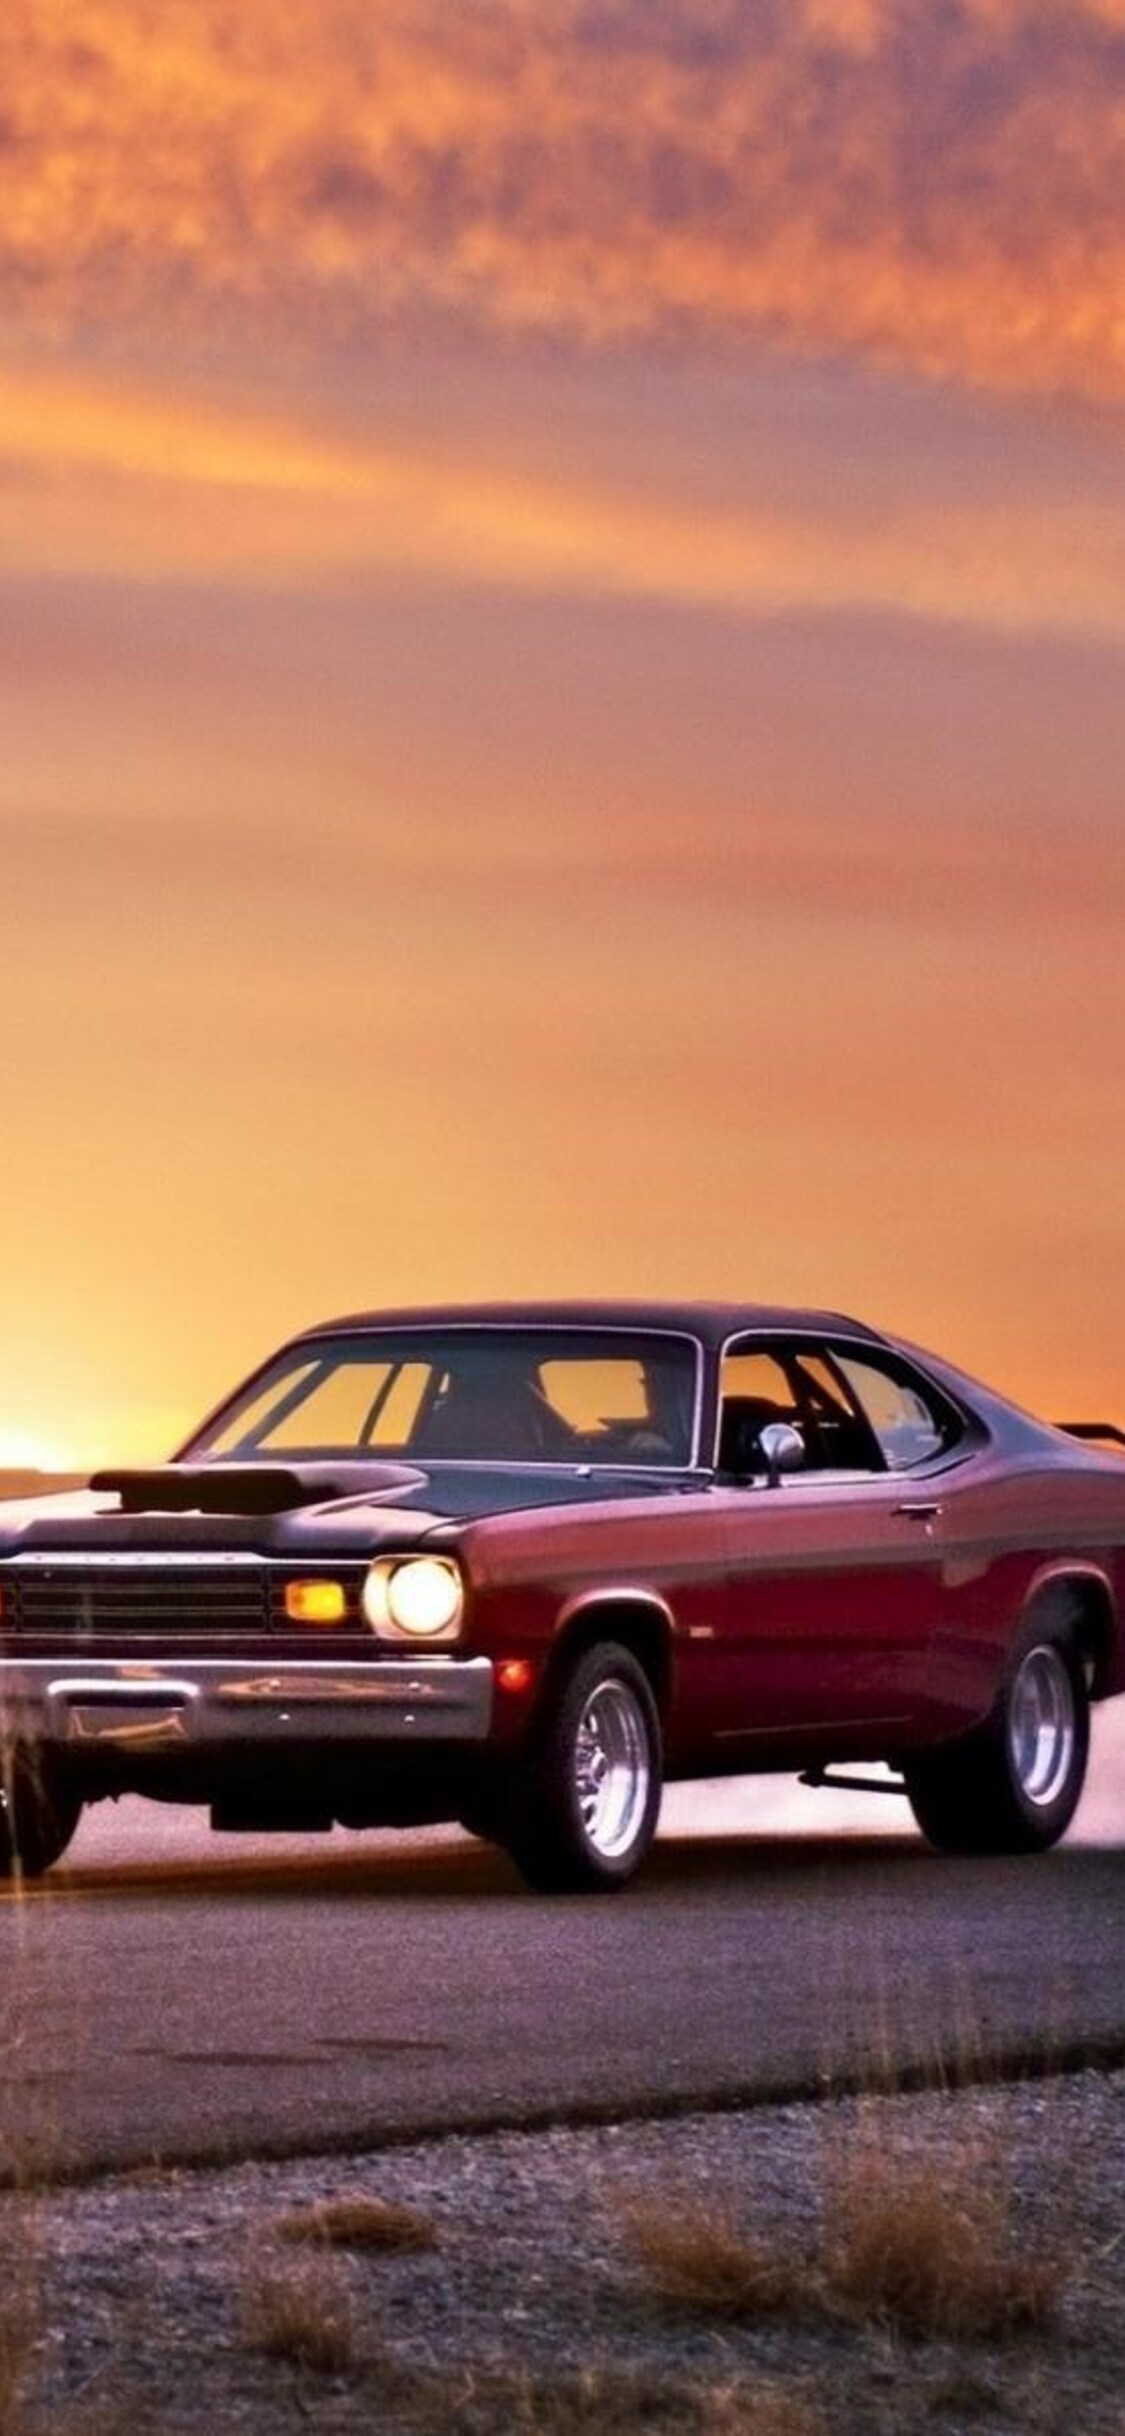 Muscle Car Wallpaper Hd Iphone